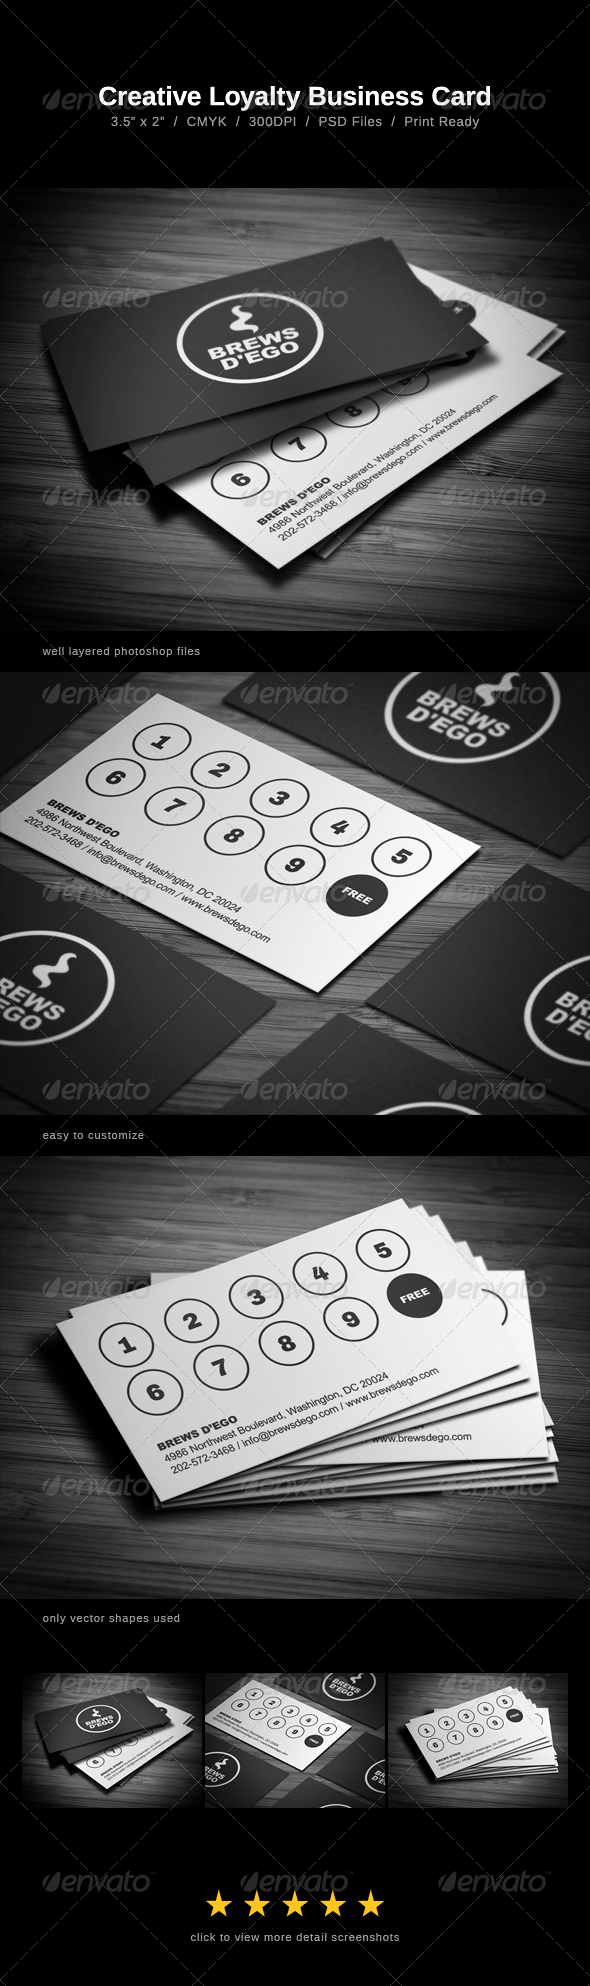 Creative Loyalty Business Card - Print Templates